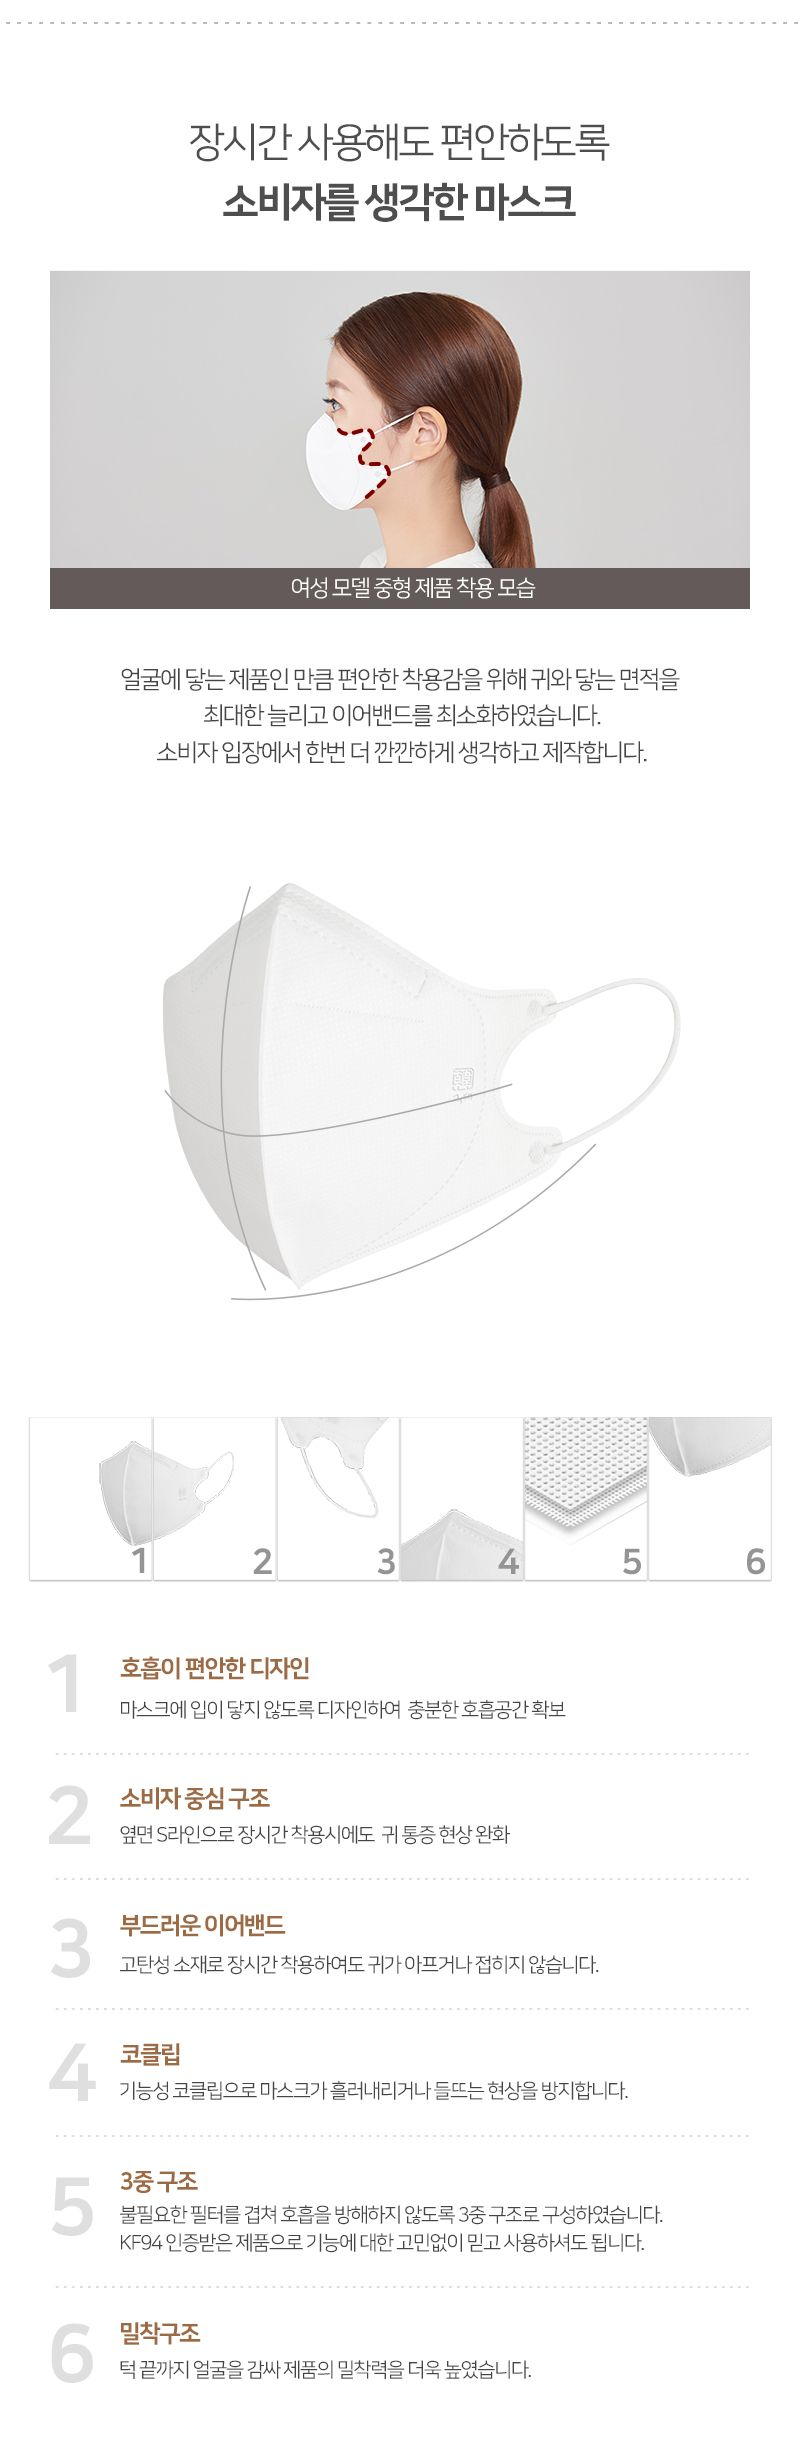 """NEW ARRIVAL"" KOREA-MASK KF94 Small-White (2D) (Limited)"